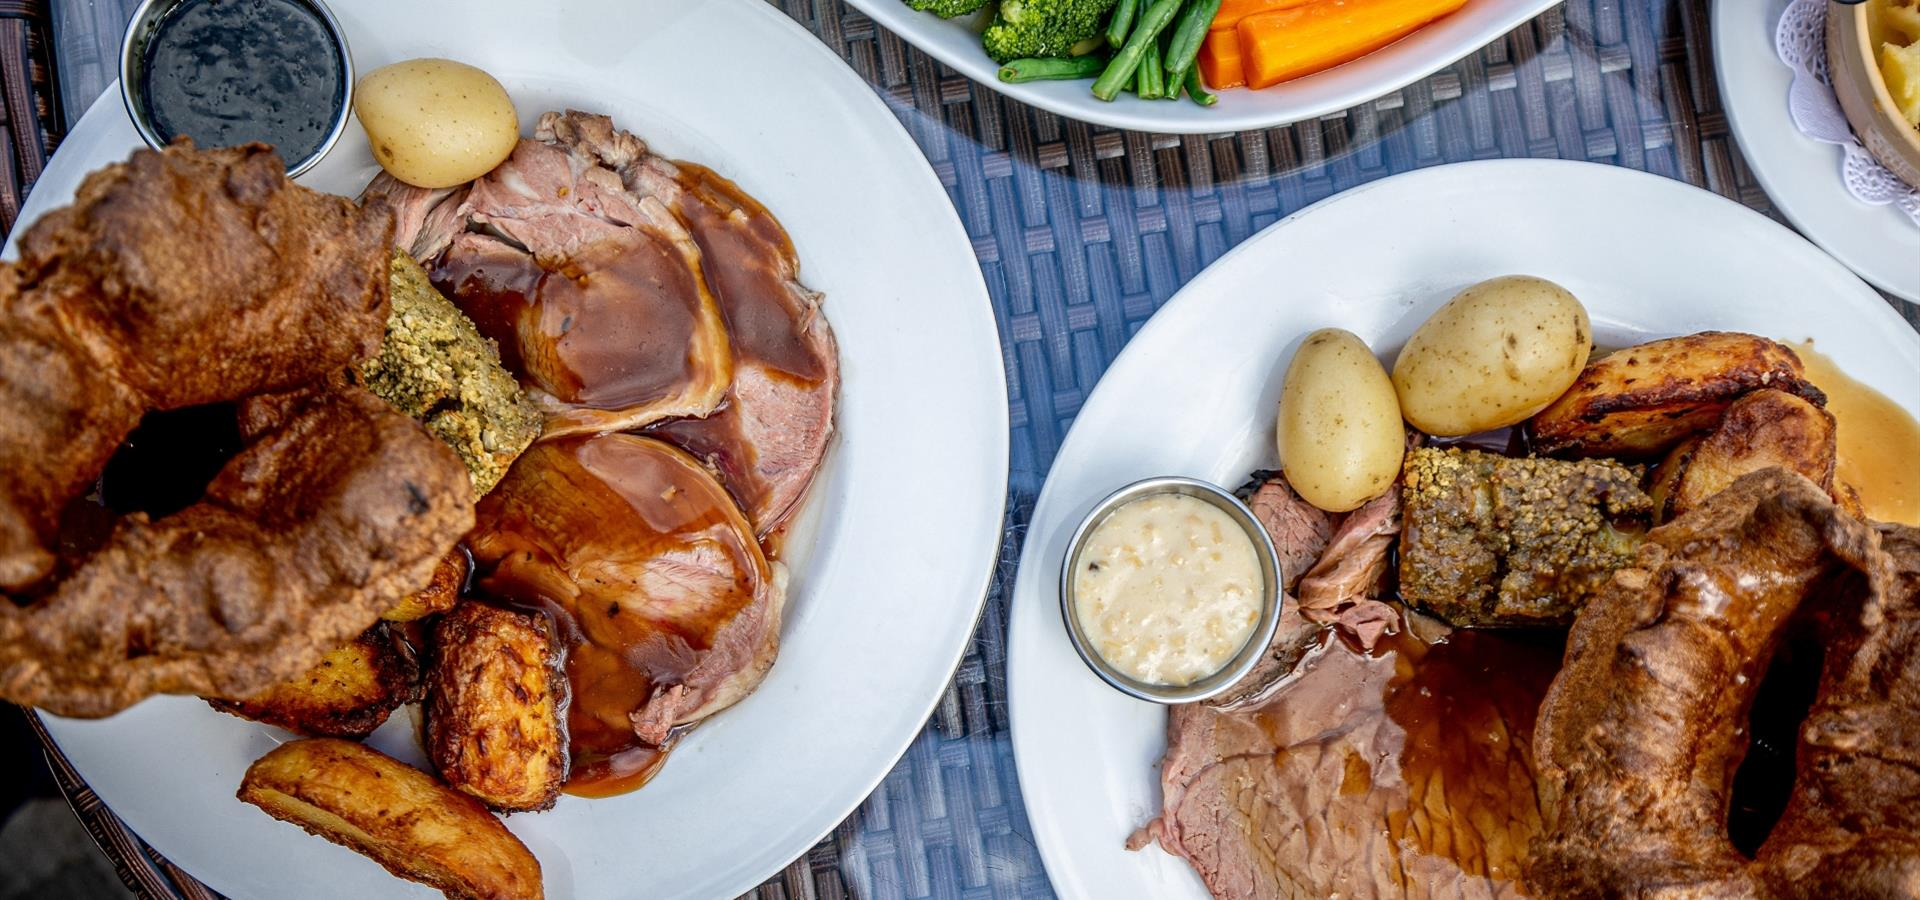 An image of a roast dinner with Yorkshire Puddings by Charlotte Graham